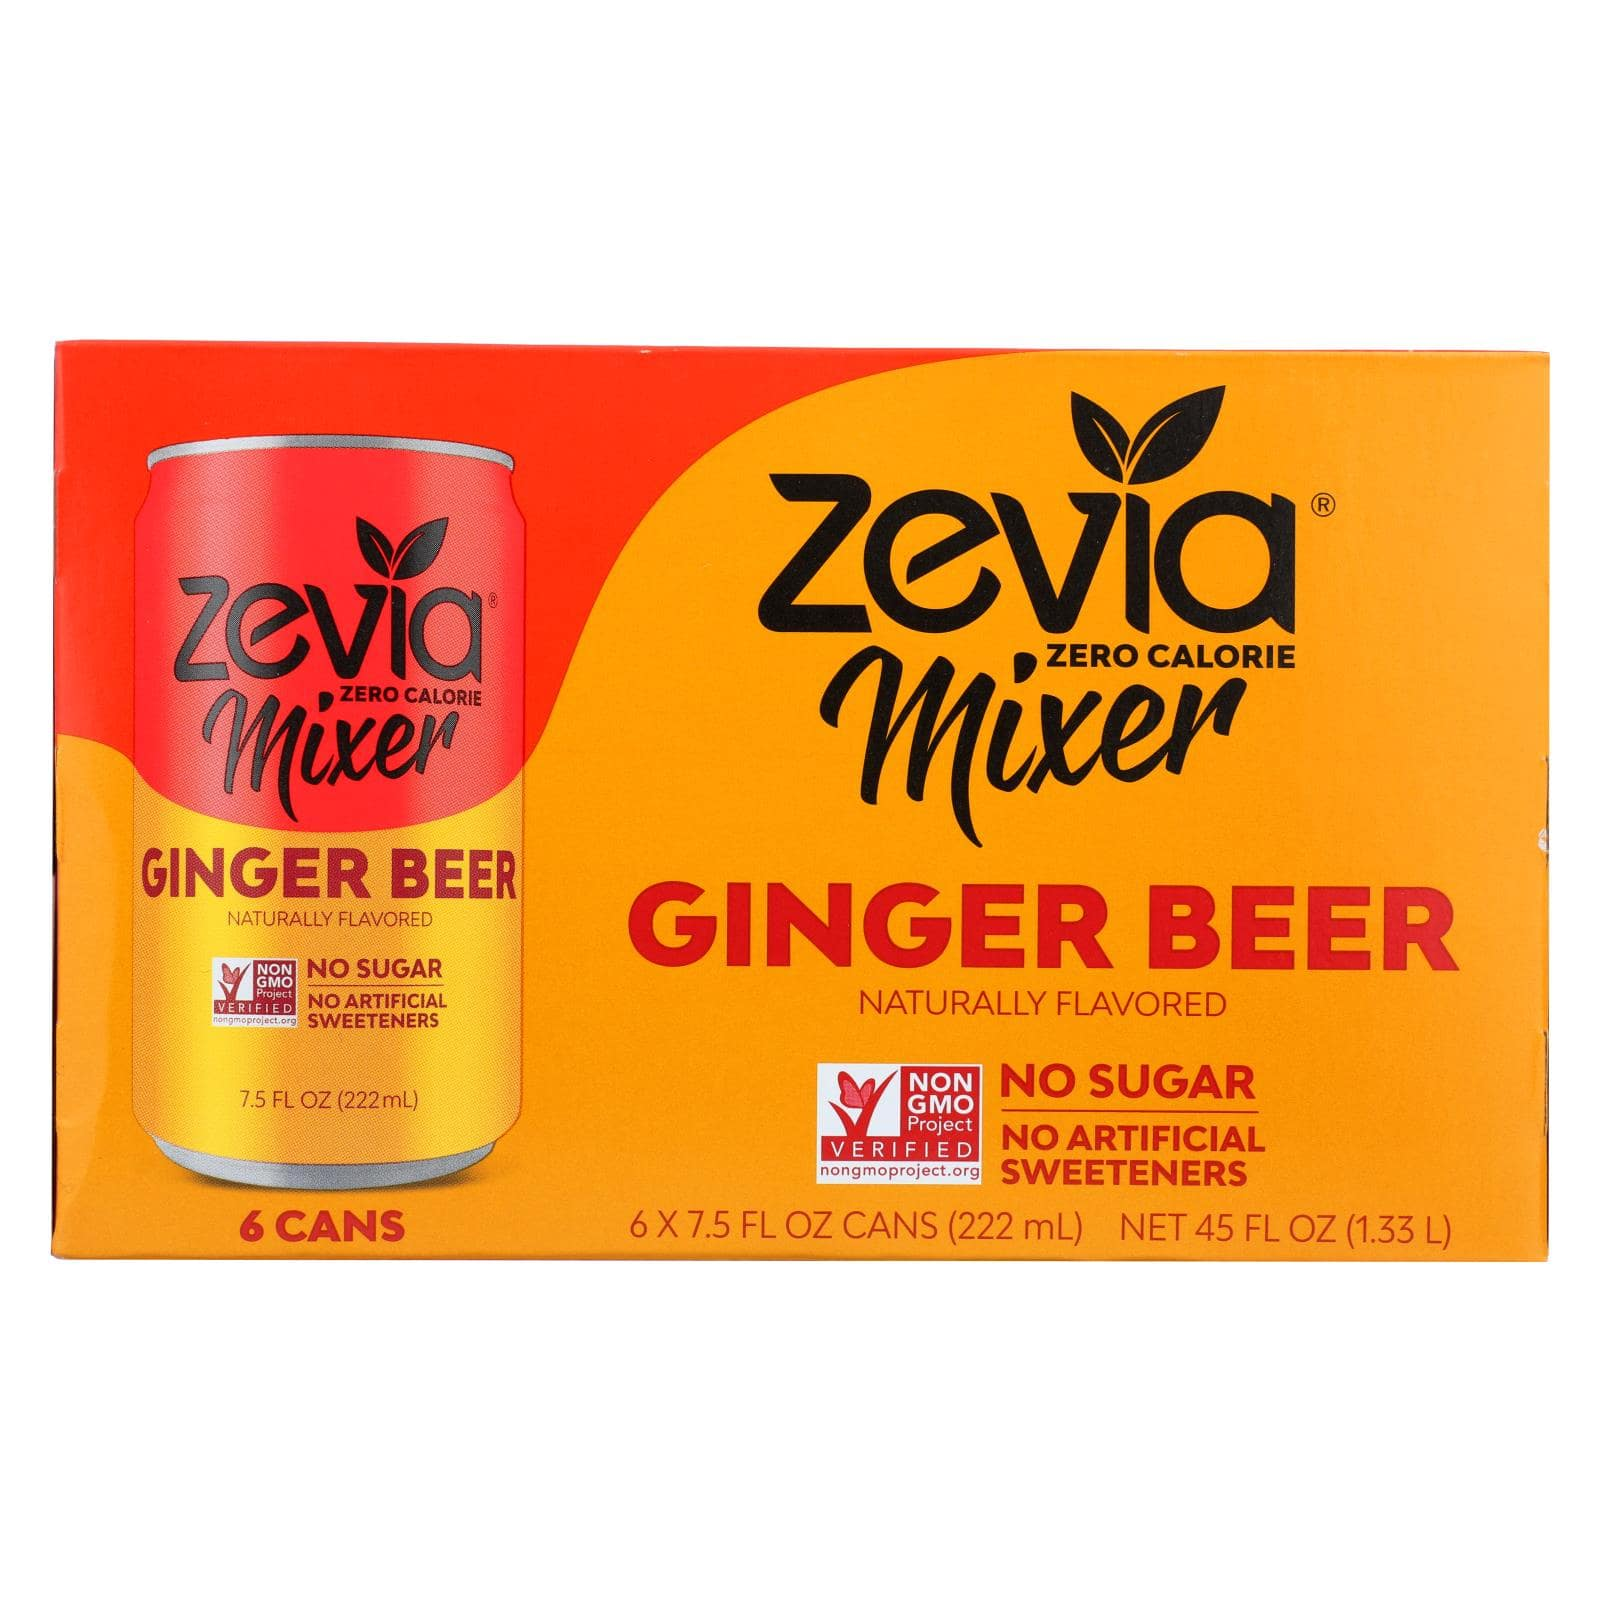 Zevia Ginger Beer